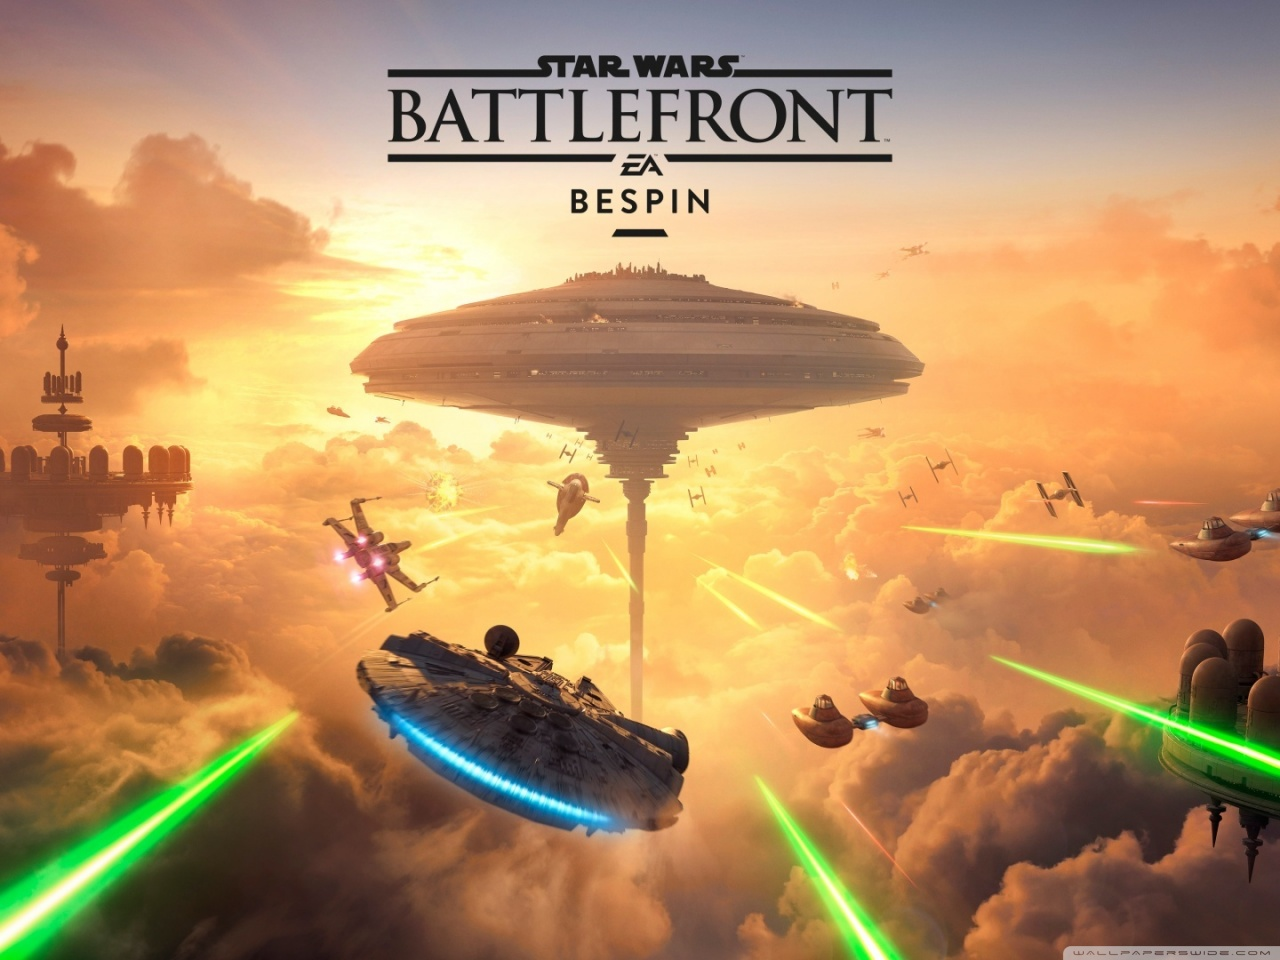 Star Wars Battlefront Bespin DLC 4K HD Desktop Wallpaper for 4K 1280x960